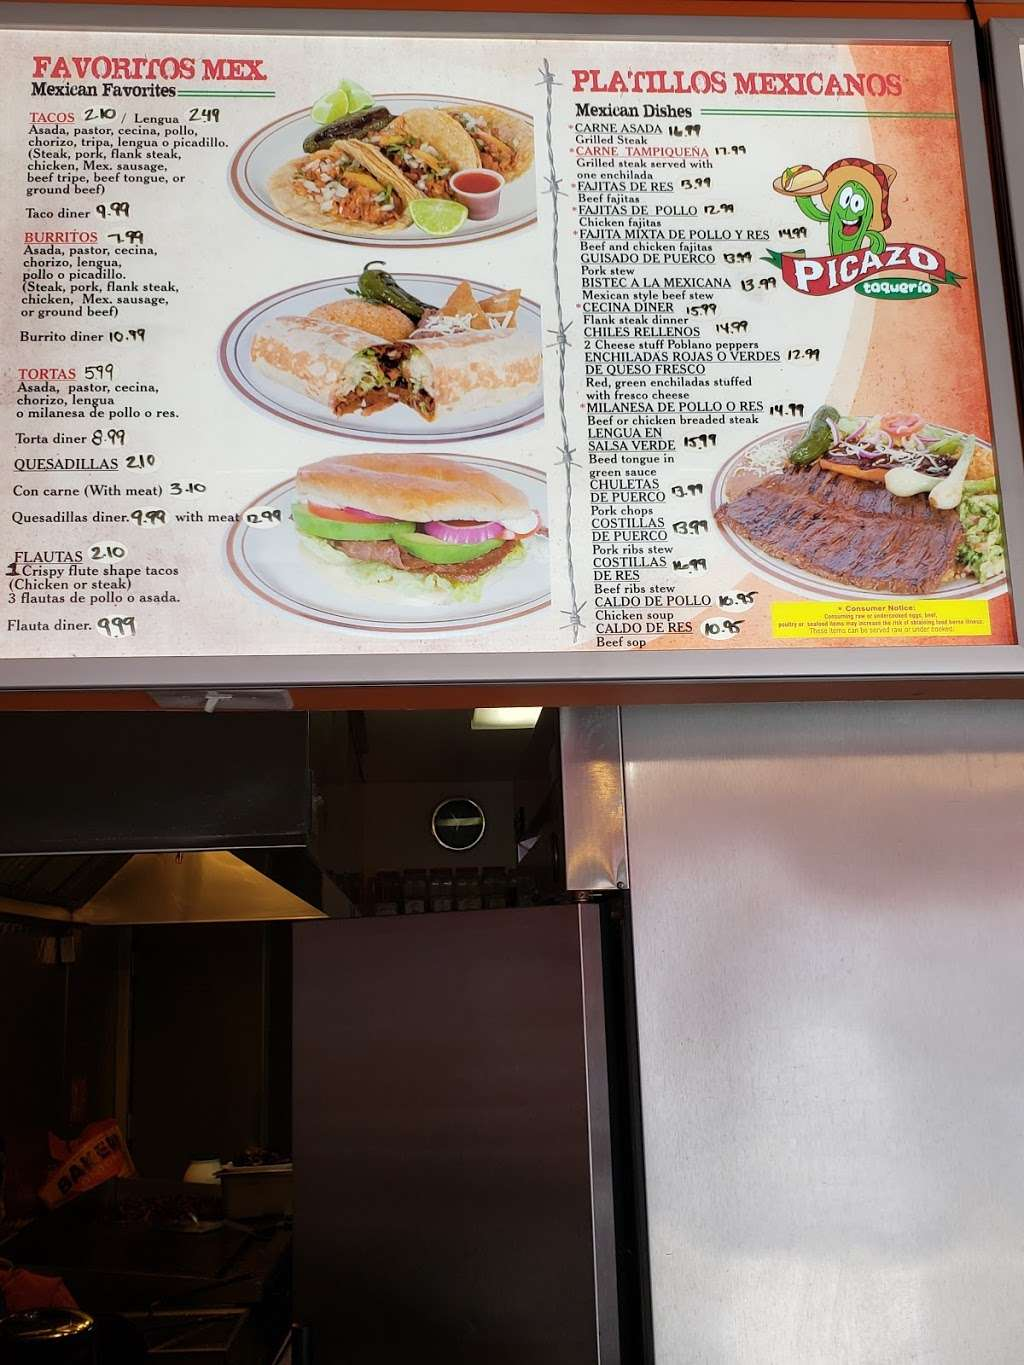 Taquería Picazo - restaurant  | Photo 9 of 9 | Address: 9710 S Commercial Ave, Chicago, IL 60617, USA | Phone: (773) 221-5743